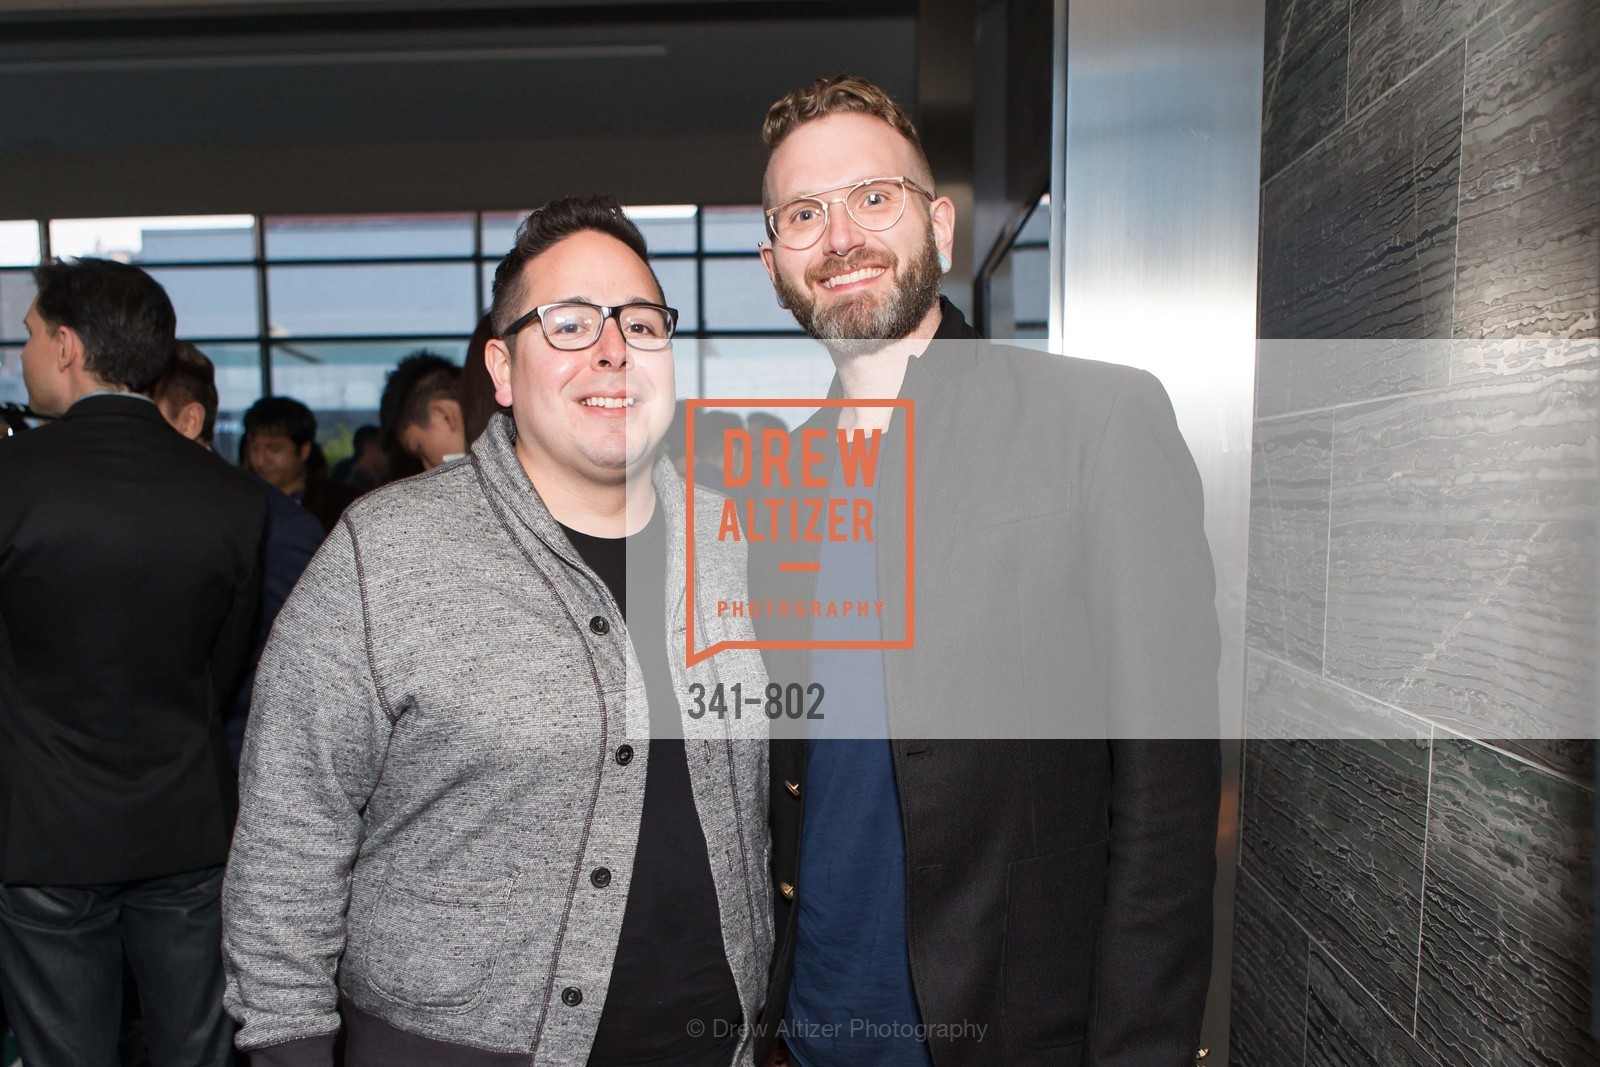 Tim Trader, Jeremy Hurst, MR PORTER Celebrate The San Francisco Issue of The Journal, US, April 24th, 2015,Drew Altizer, Drew Altizer Photography, full-service agency, private events, San Francisco photographer, photographer california